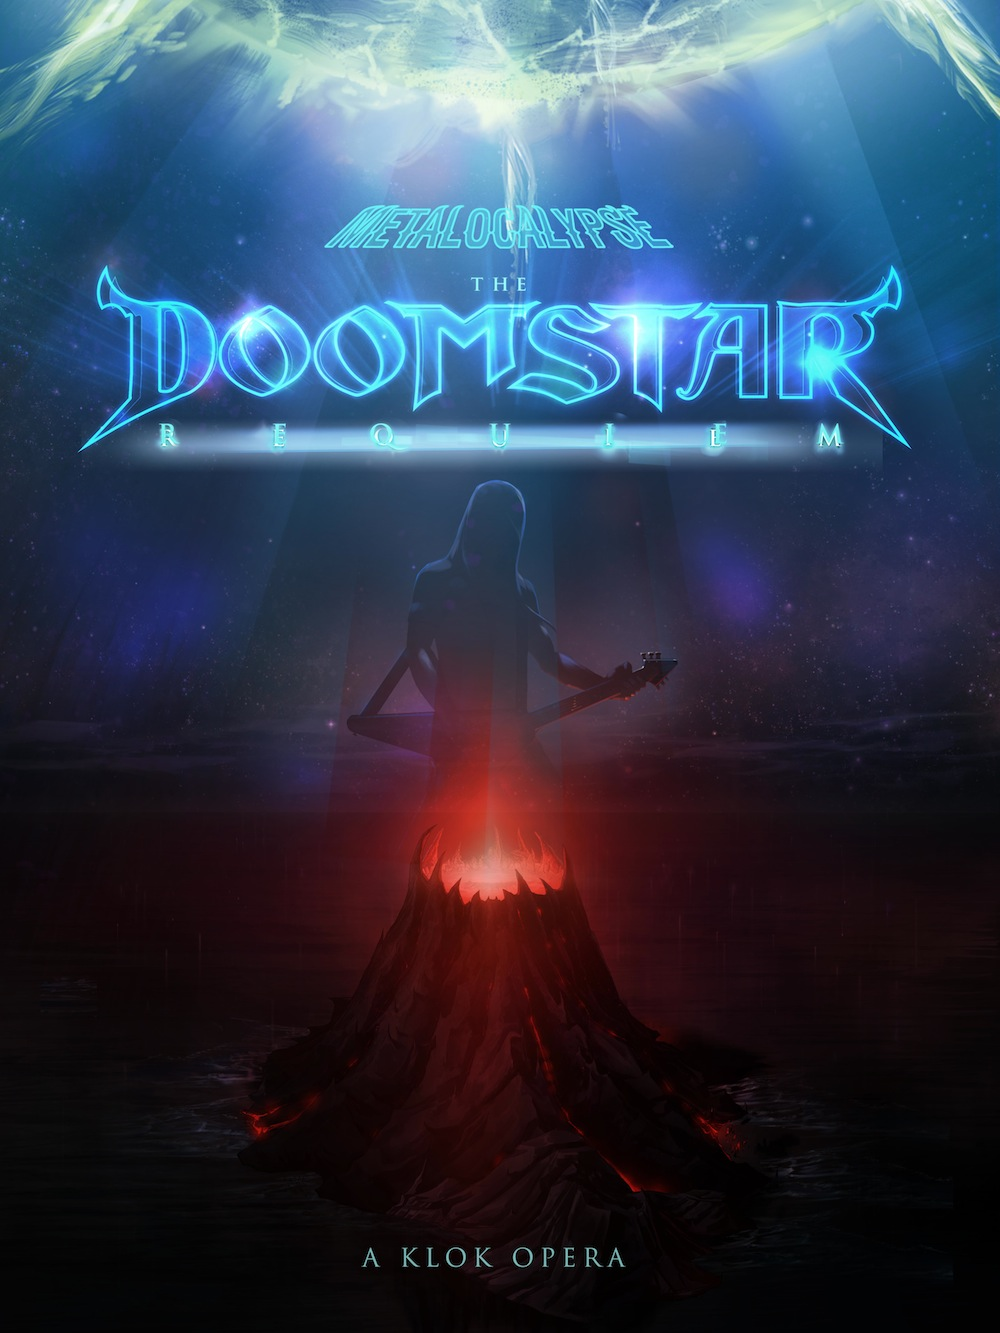 Hear the Original Score Soundtrack for Dethklok's 'Metalocalypse: The Doomstar Requiem A Klok Opera' Now!